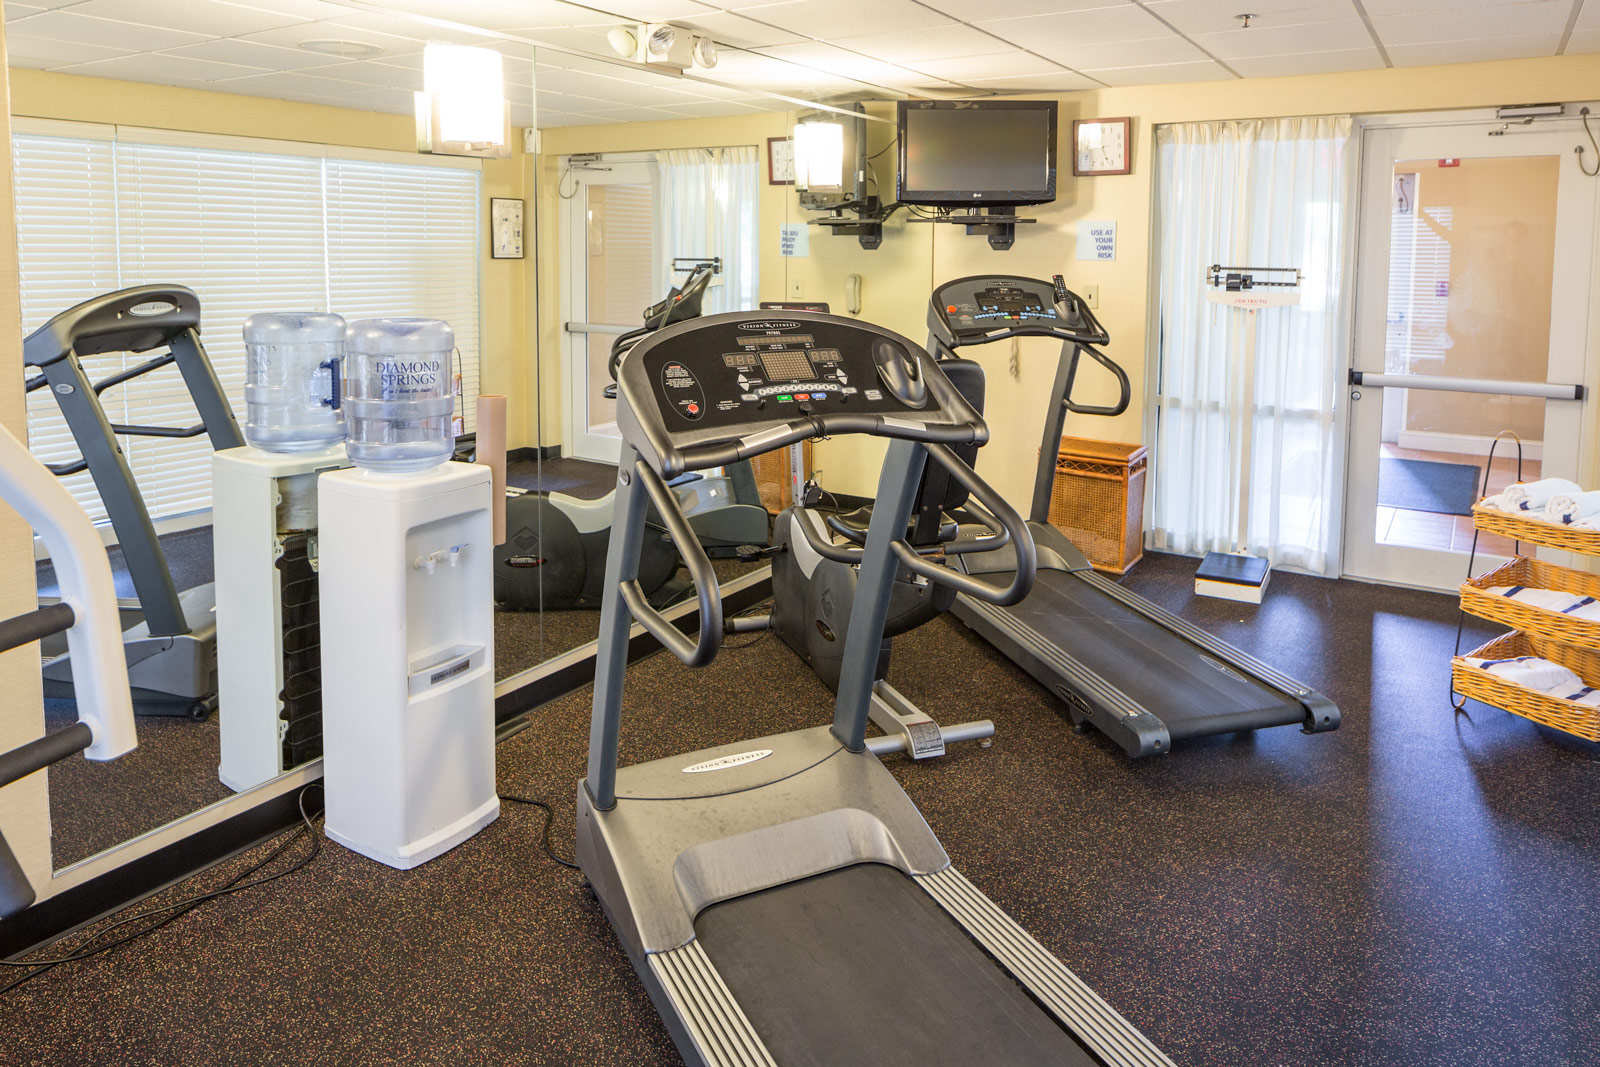 Holiday Inn Express & Suites Fitness Area